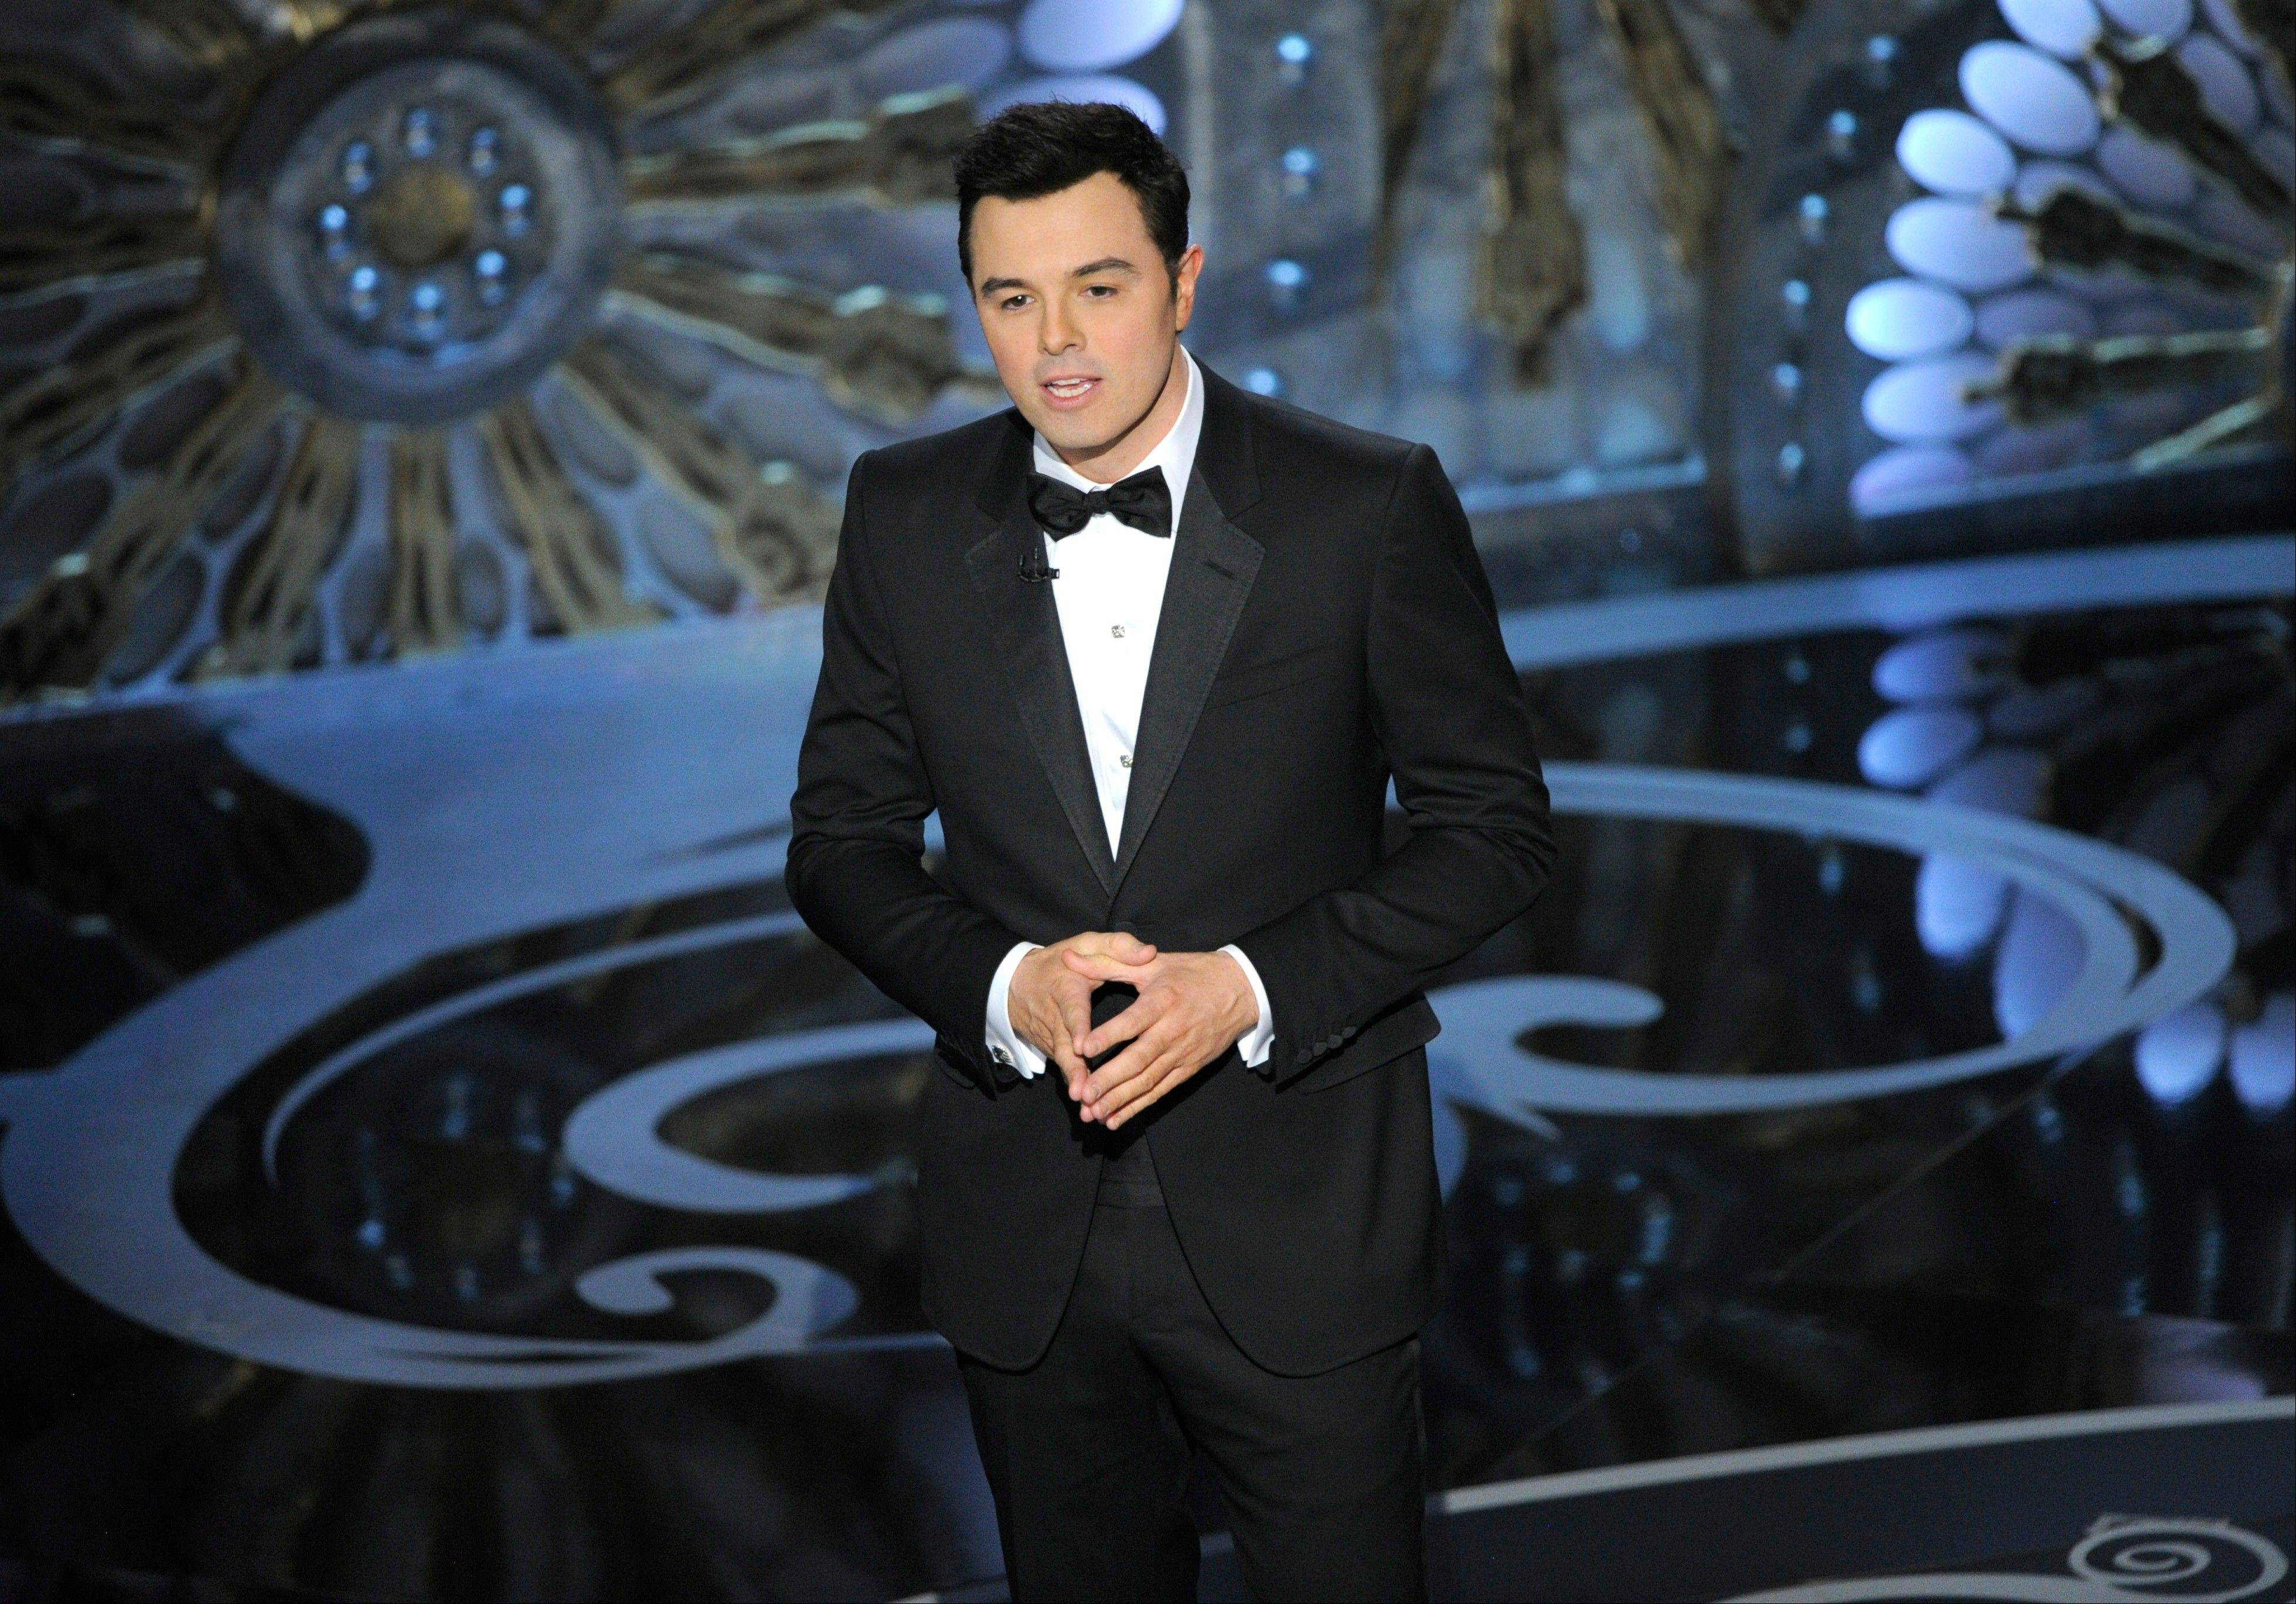 Seth MacFarlane says he is too busy to host the Oscars in 2014.